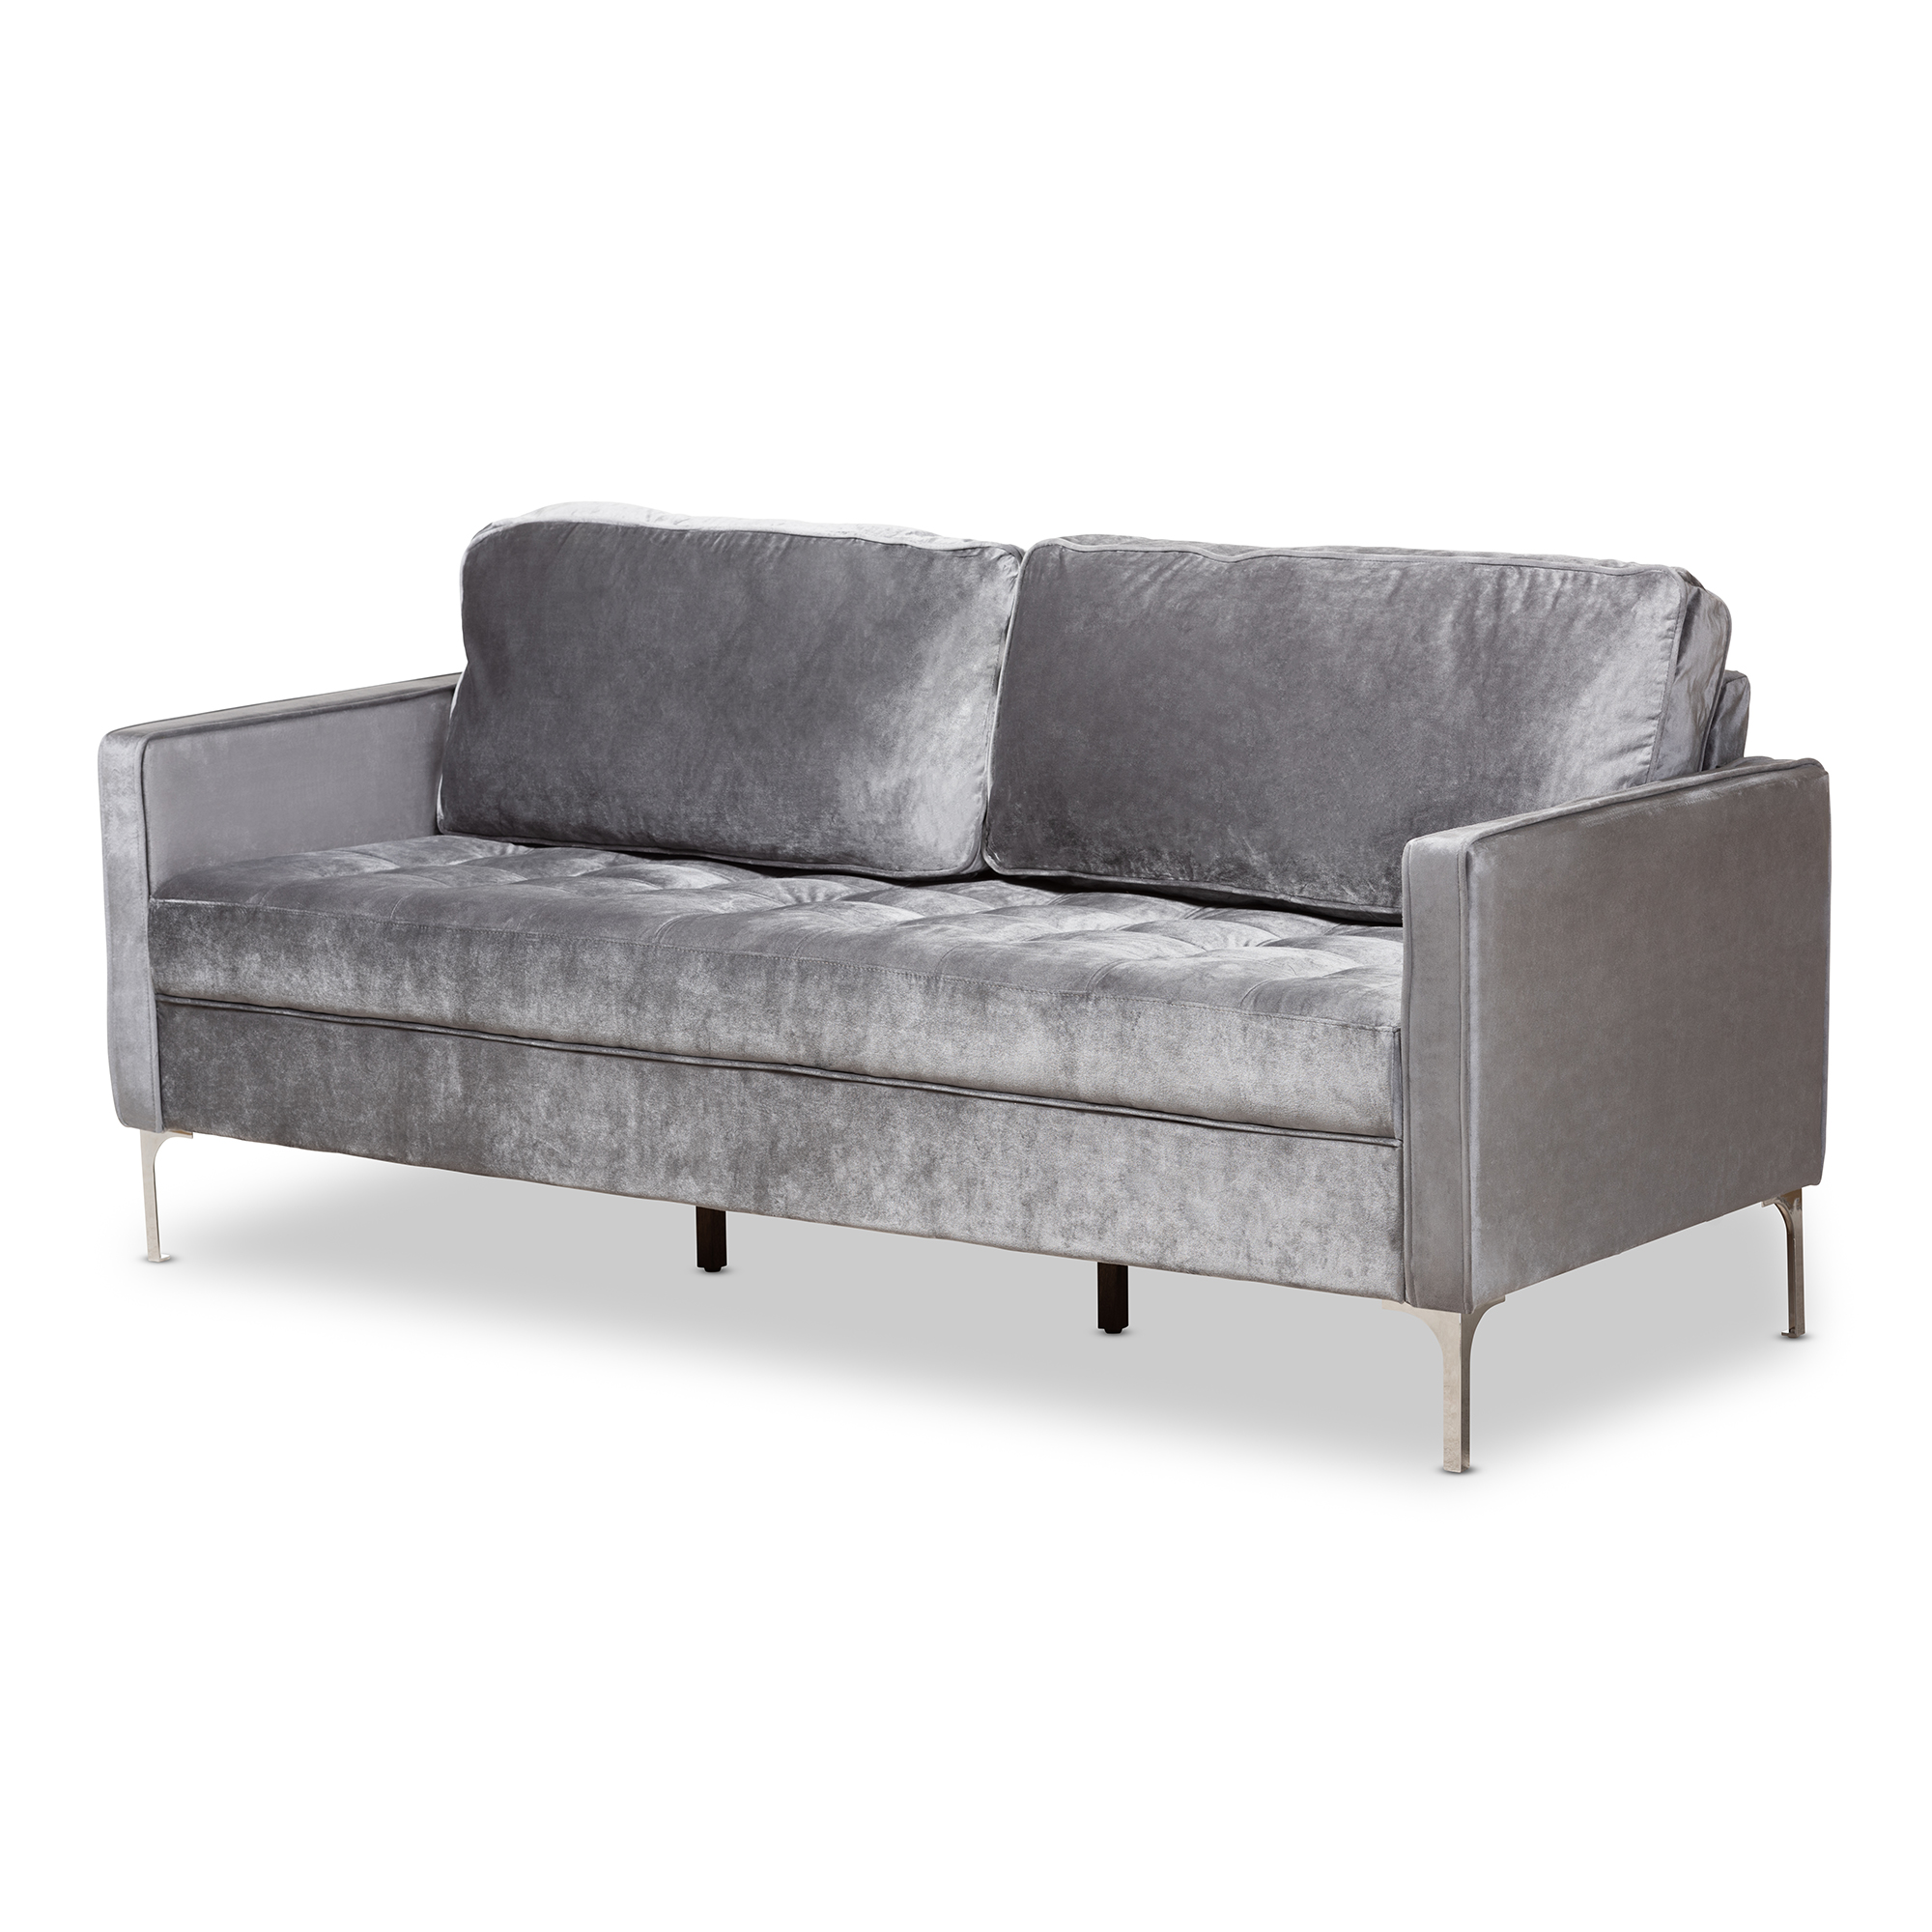 Baxton Studio Clara Modern And Contemporary Grey Velvet Fabric Upholstered  3 Seater Sofa Affordable Modern